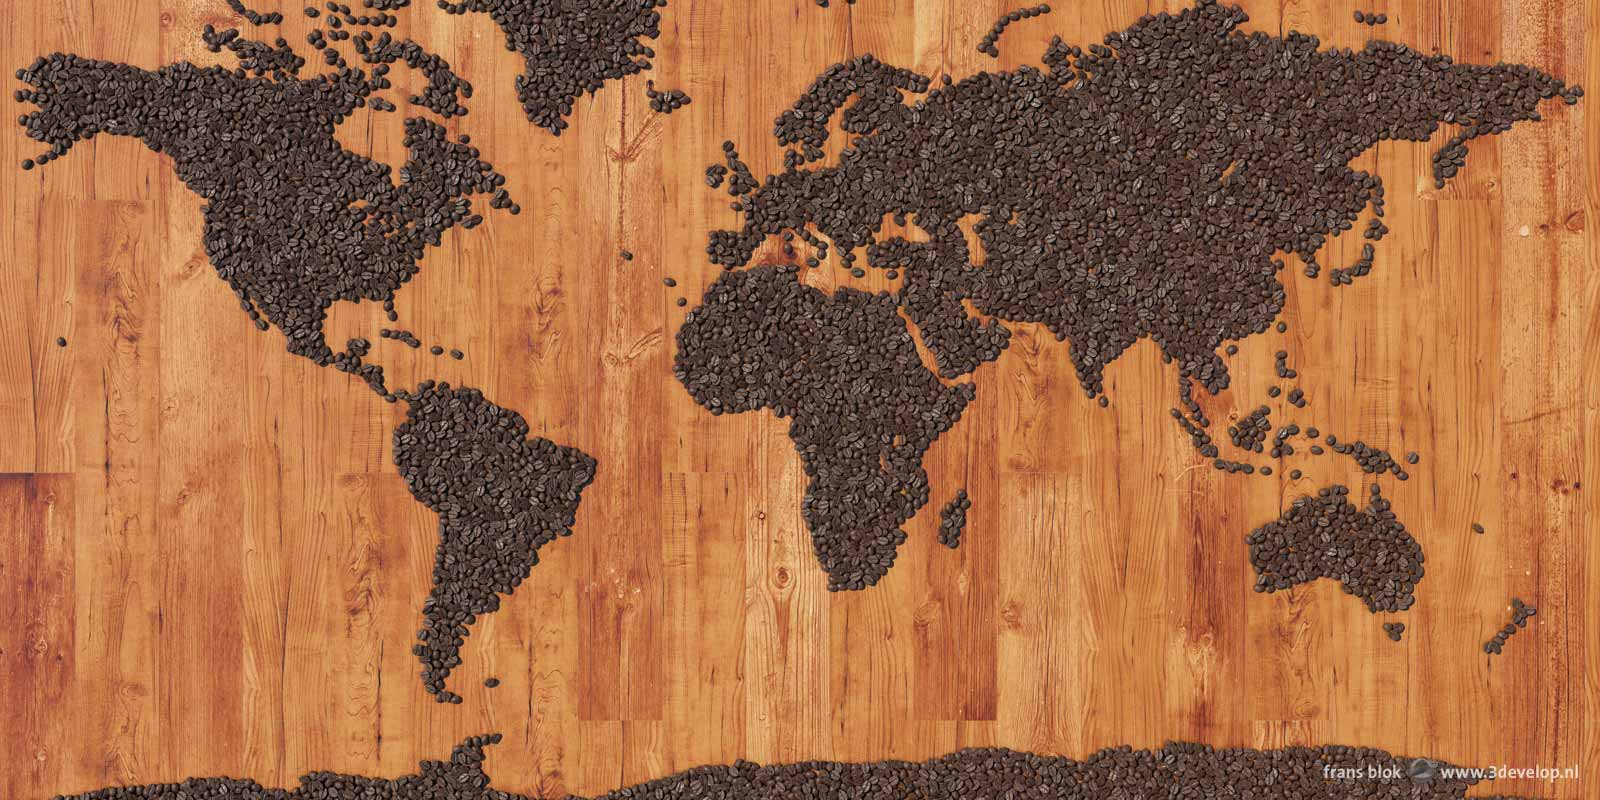 World map of thousands of digital coffee beans on a virtual wooden table top, made with Autocad, 3ds Max and Photoshop